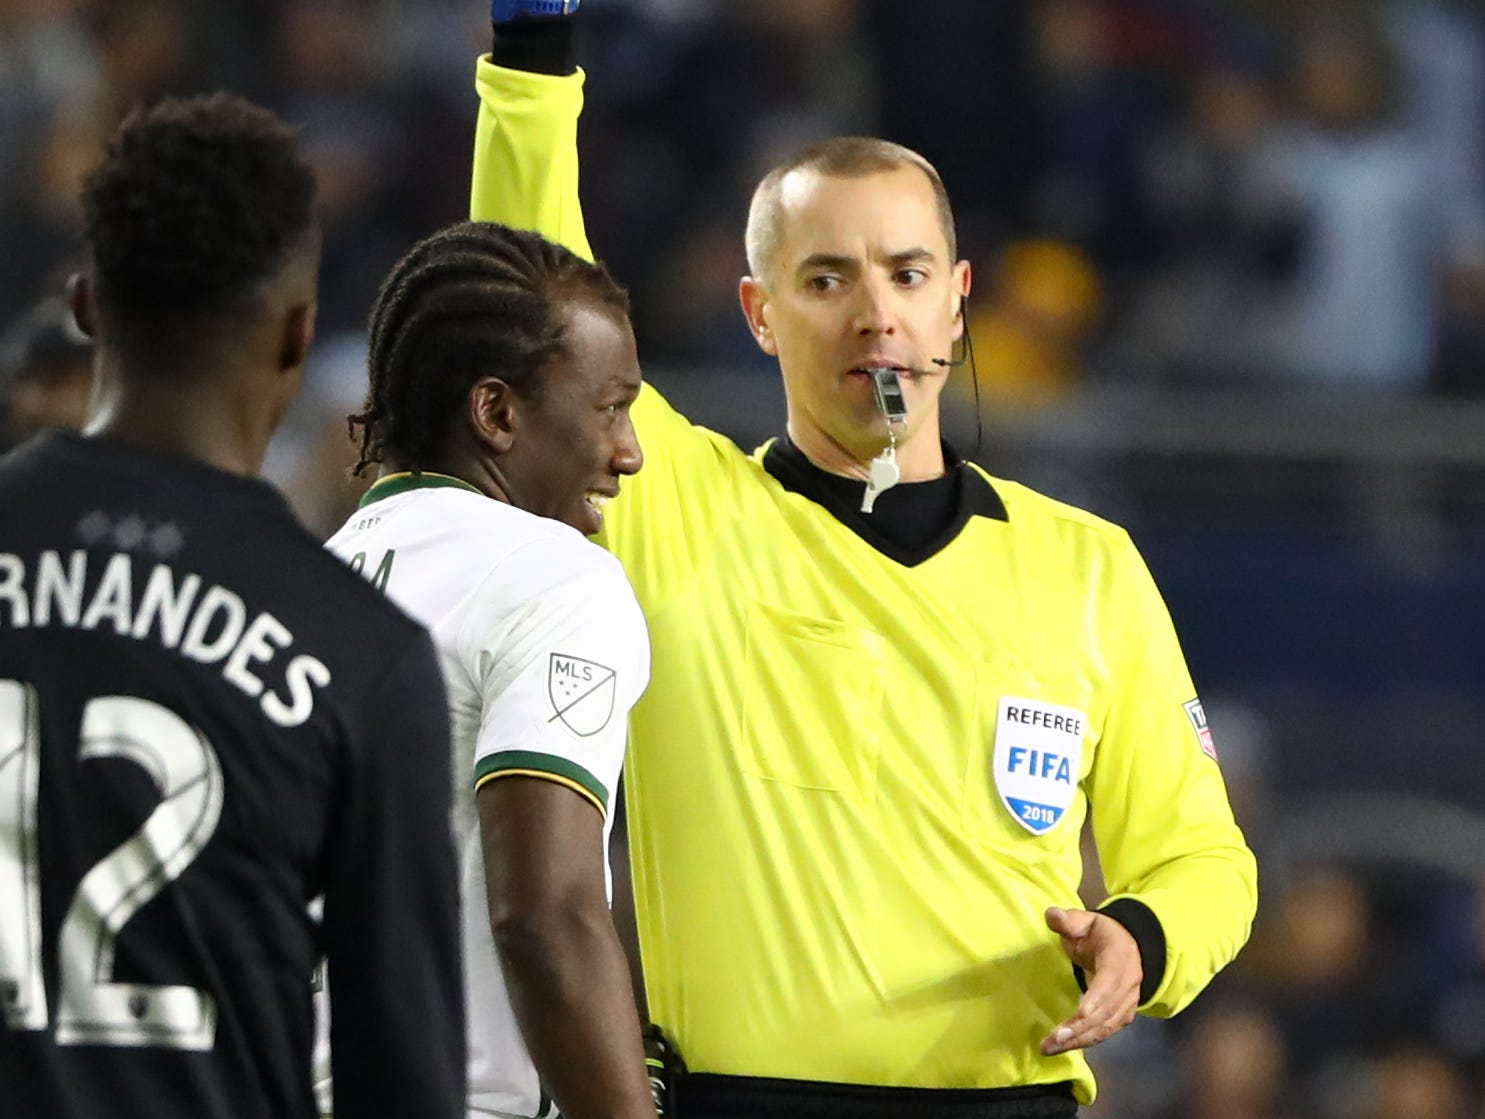 Nov 29, 2018; Kansas City, KS, USA; Portland Timbers midfielder Diego Chara (21) receives a yellow card from referee Mark Geiger during the second half against the Sporting Kansas City in the second leg of the MLS Western Conference Championship at Children's Mercy Park. Mandatory Credit: Jay Biggerstaff-USA TODAY Sports